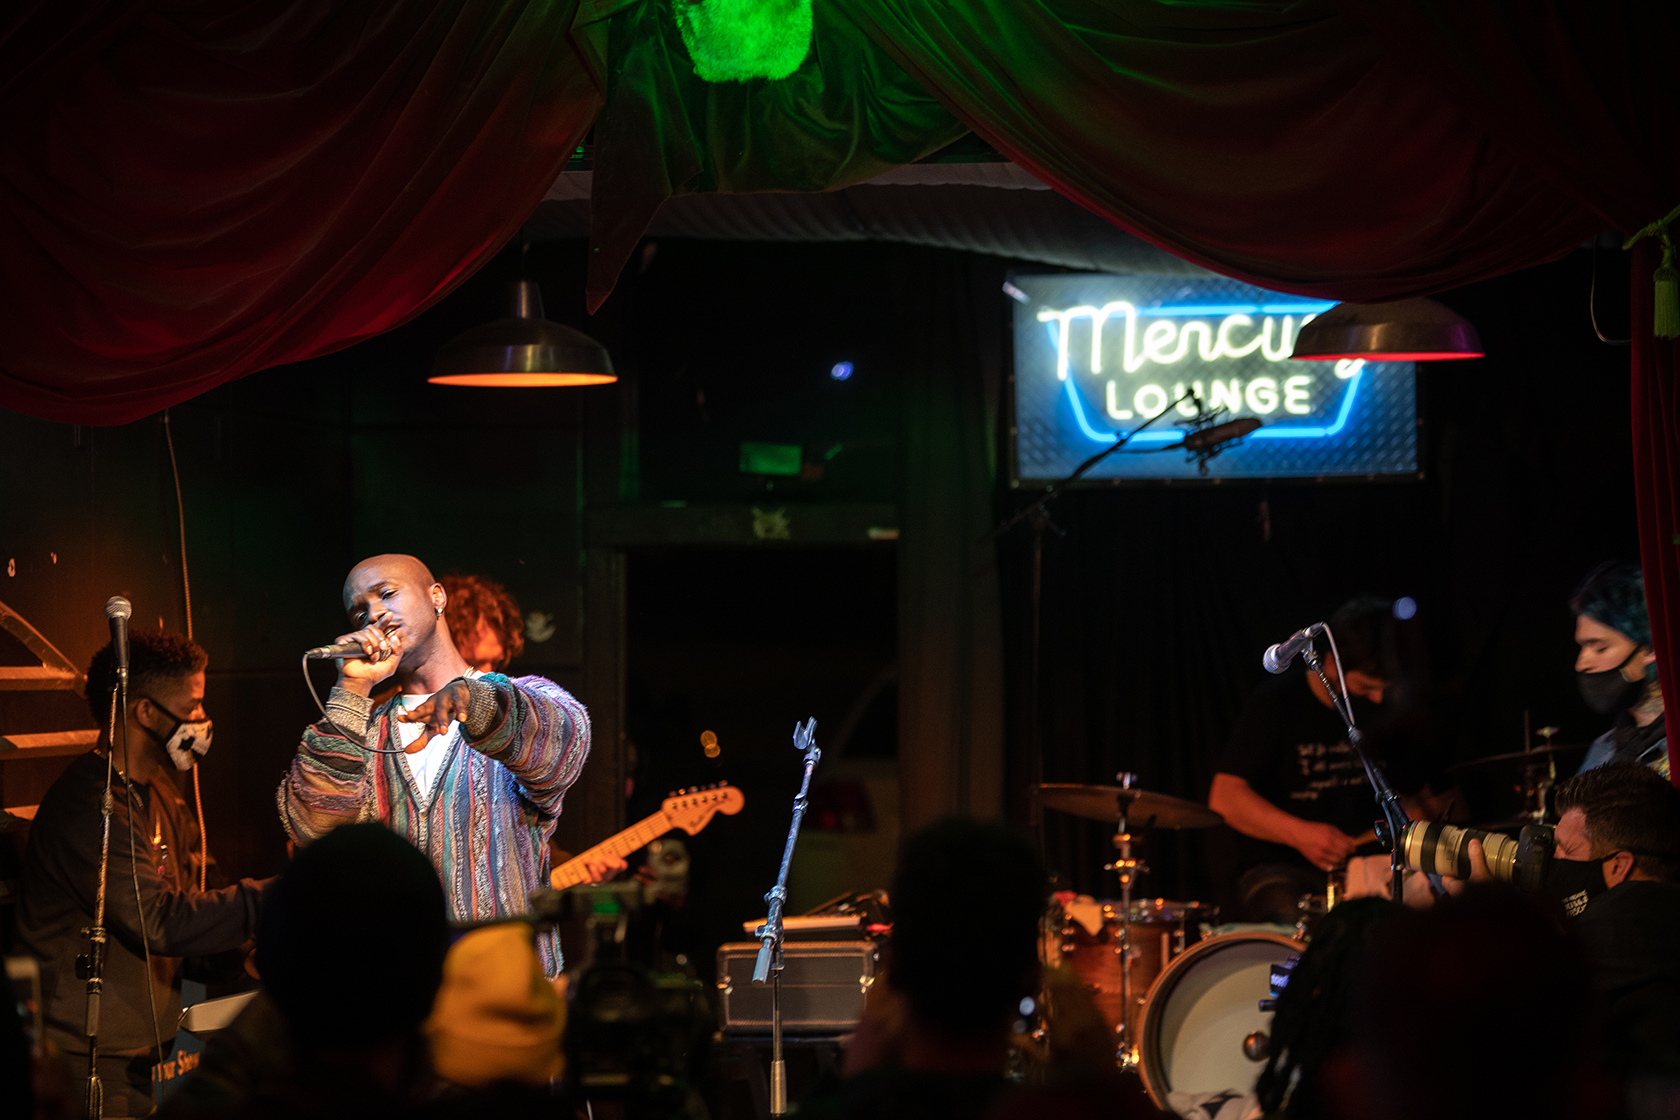 """A band (singer, guitarist, keyboardist, drummer) performs on a stage with the words """"Mercury Lounge"""" in neon behind them."""